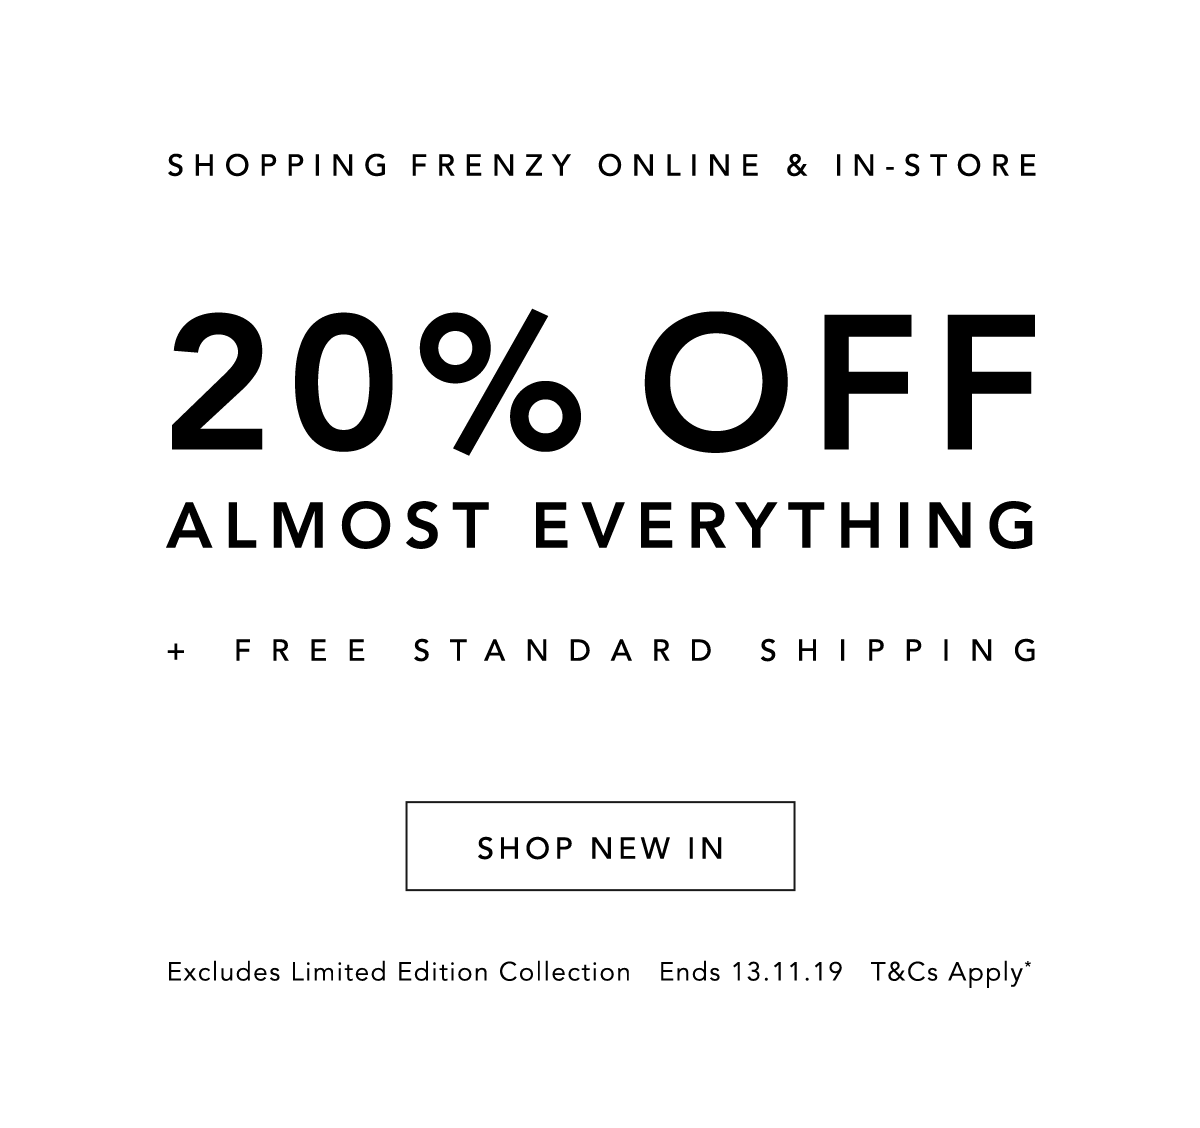 Shopping Frenzy is Online & In-store. 20% Off Almost Everything, Plus, Free Standard Shipping. Shop New In Now.